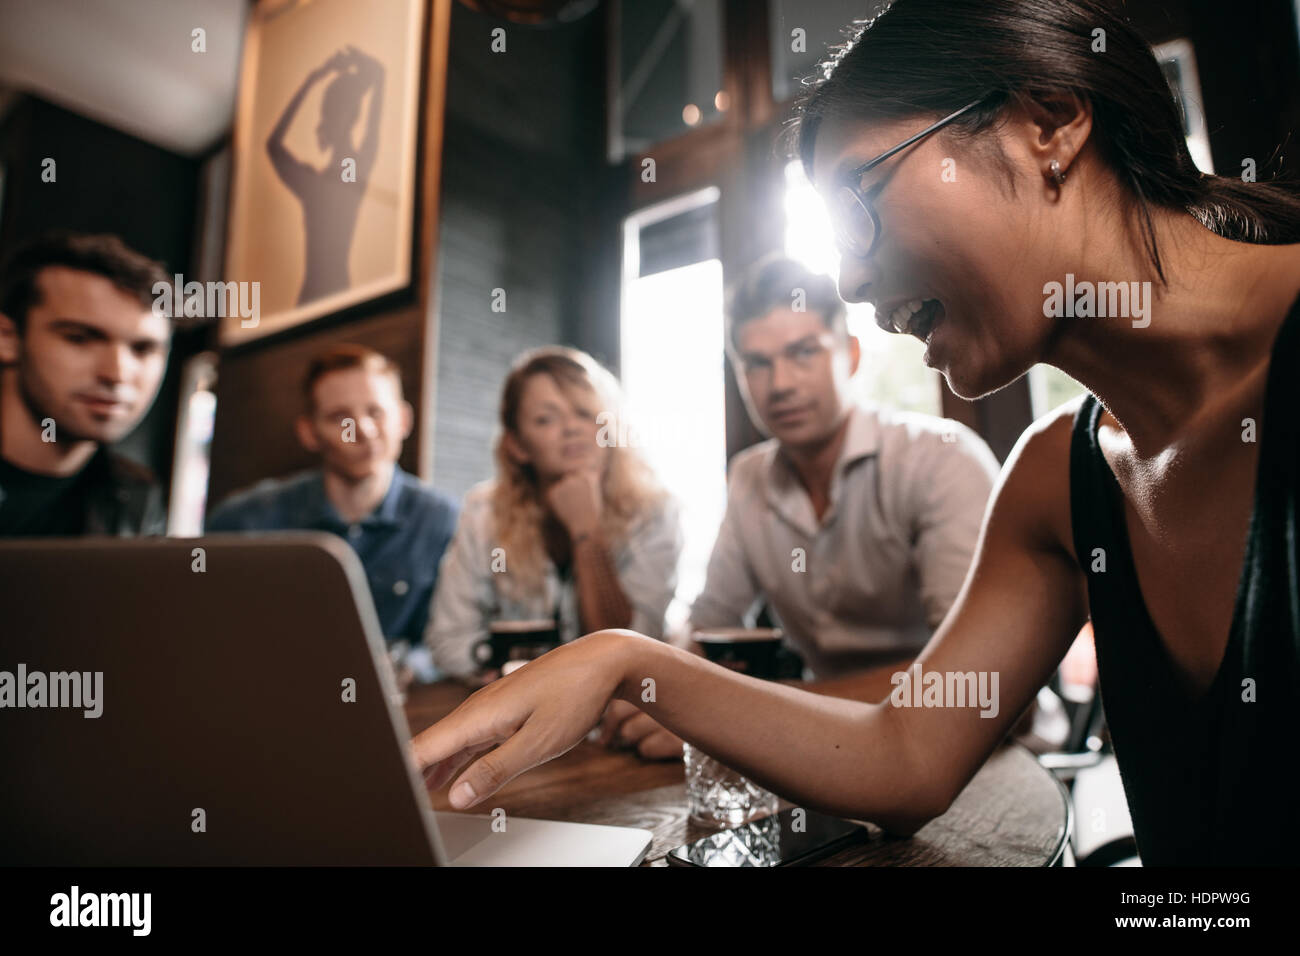 Young woman pointing at laptop and discussing with friends. Group of young people at cafe looking at laptop computer. - Stock Image